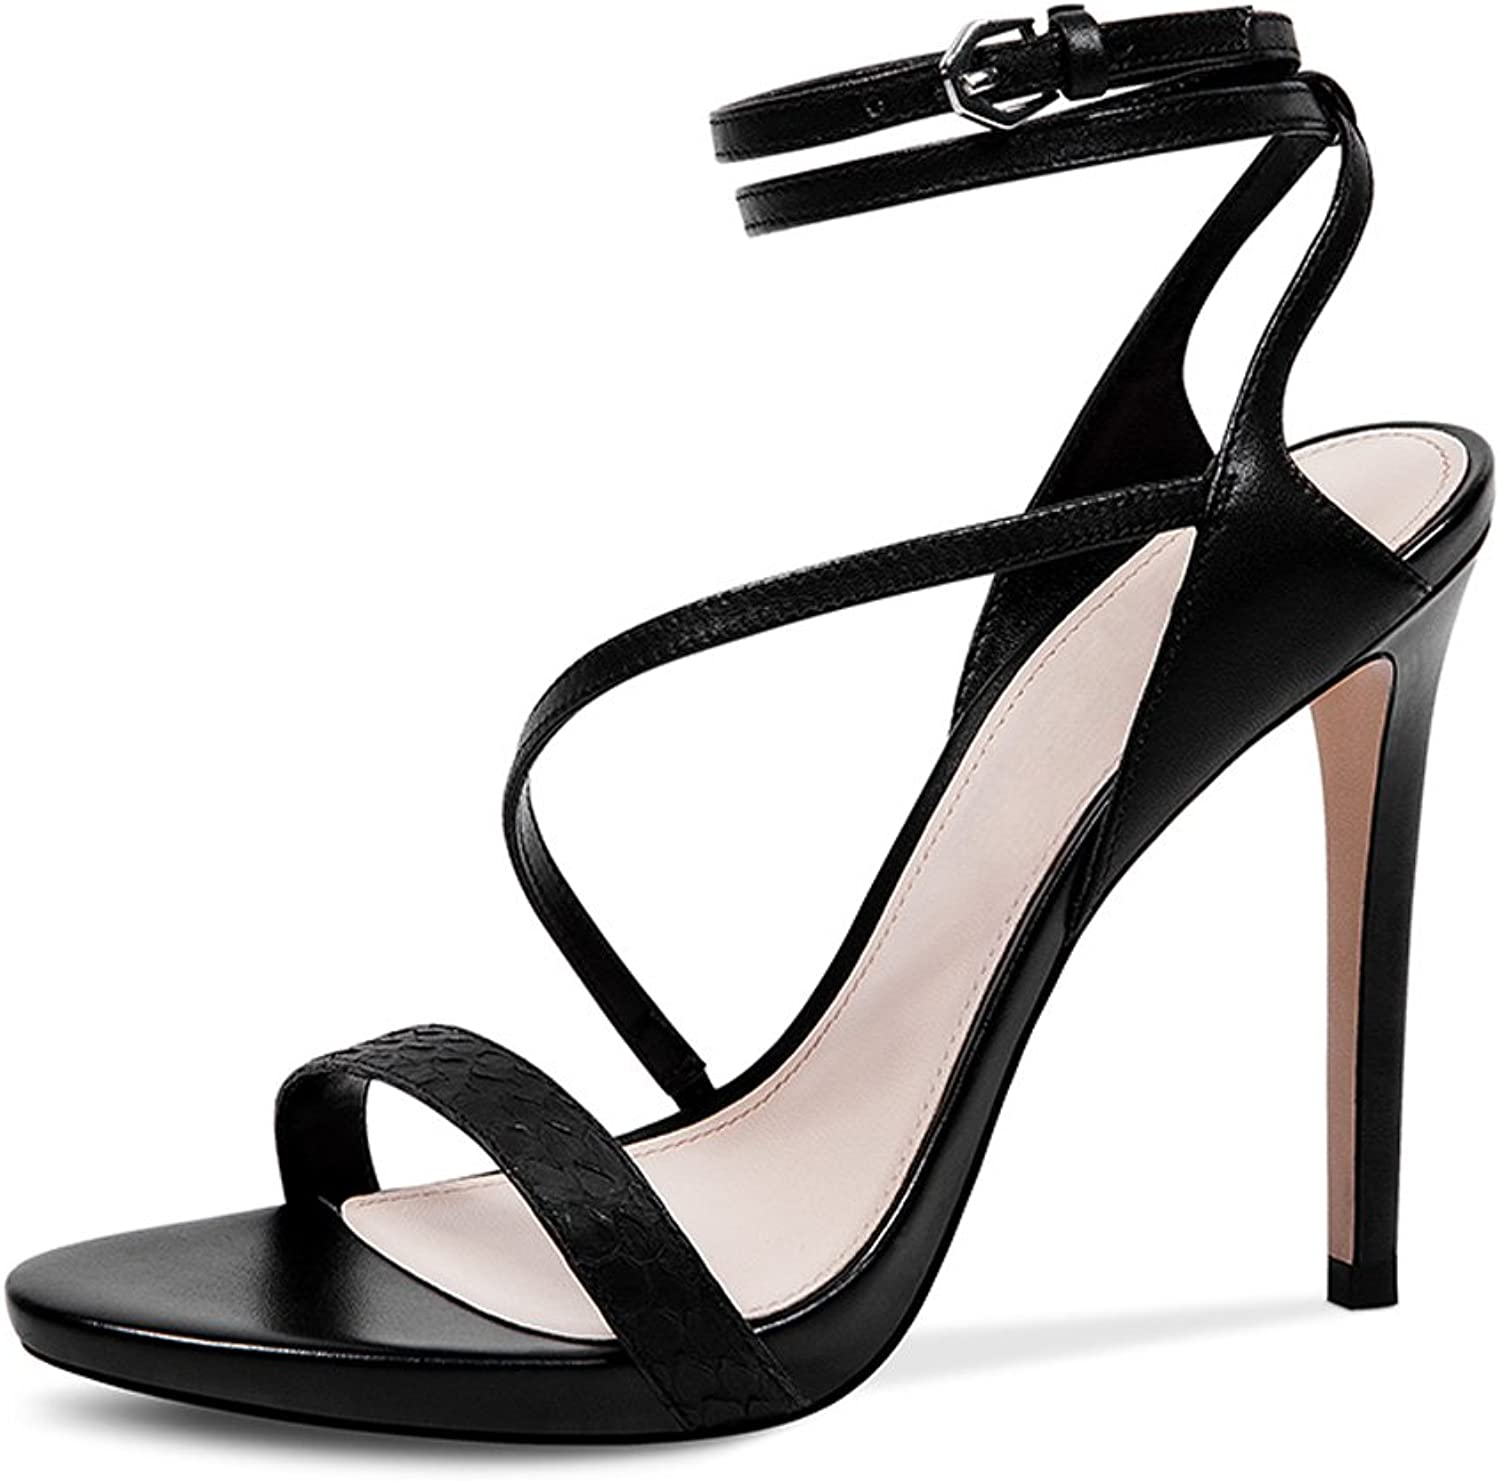 WANGXIAOLIN Europe And The United States Leather Strap Sexy Thin With Waterproof Platform High Heel Sandals ( color   Black , Size   39 )